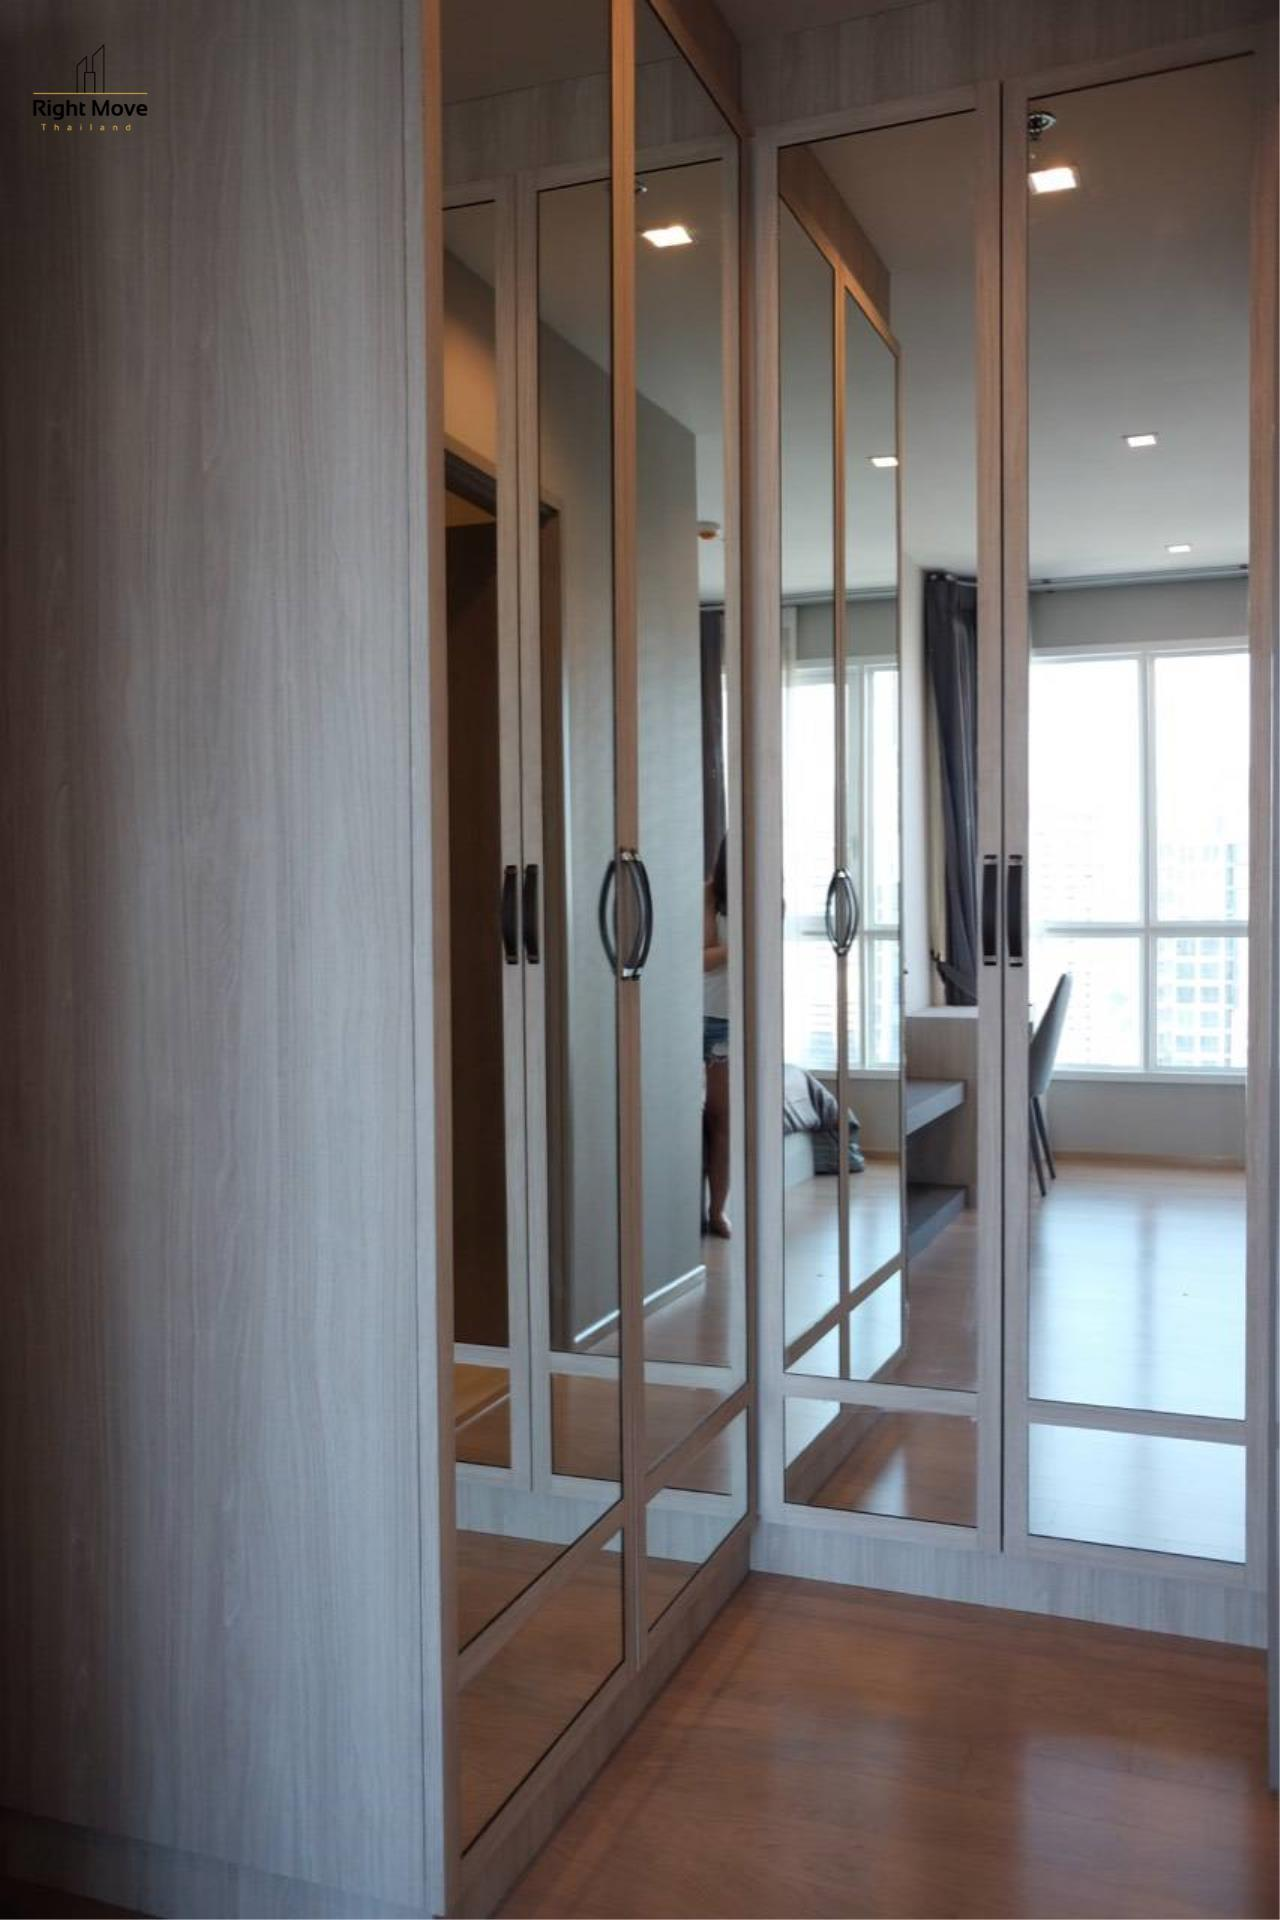 Right Move Thailand Agency's CA6138 HQ Thonglor For Rent 45,000 THB 2 Bedroom 43.5 Sqm 12